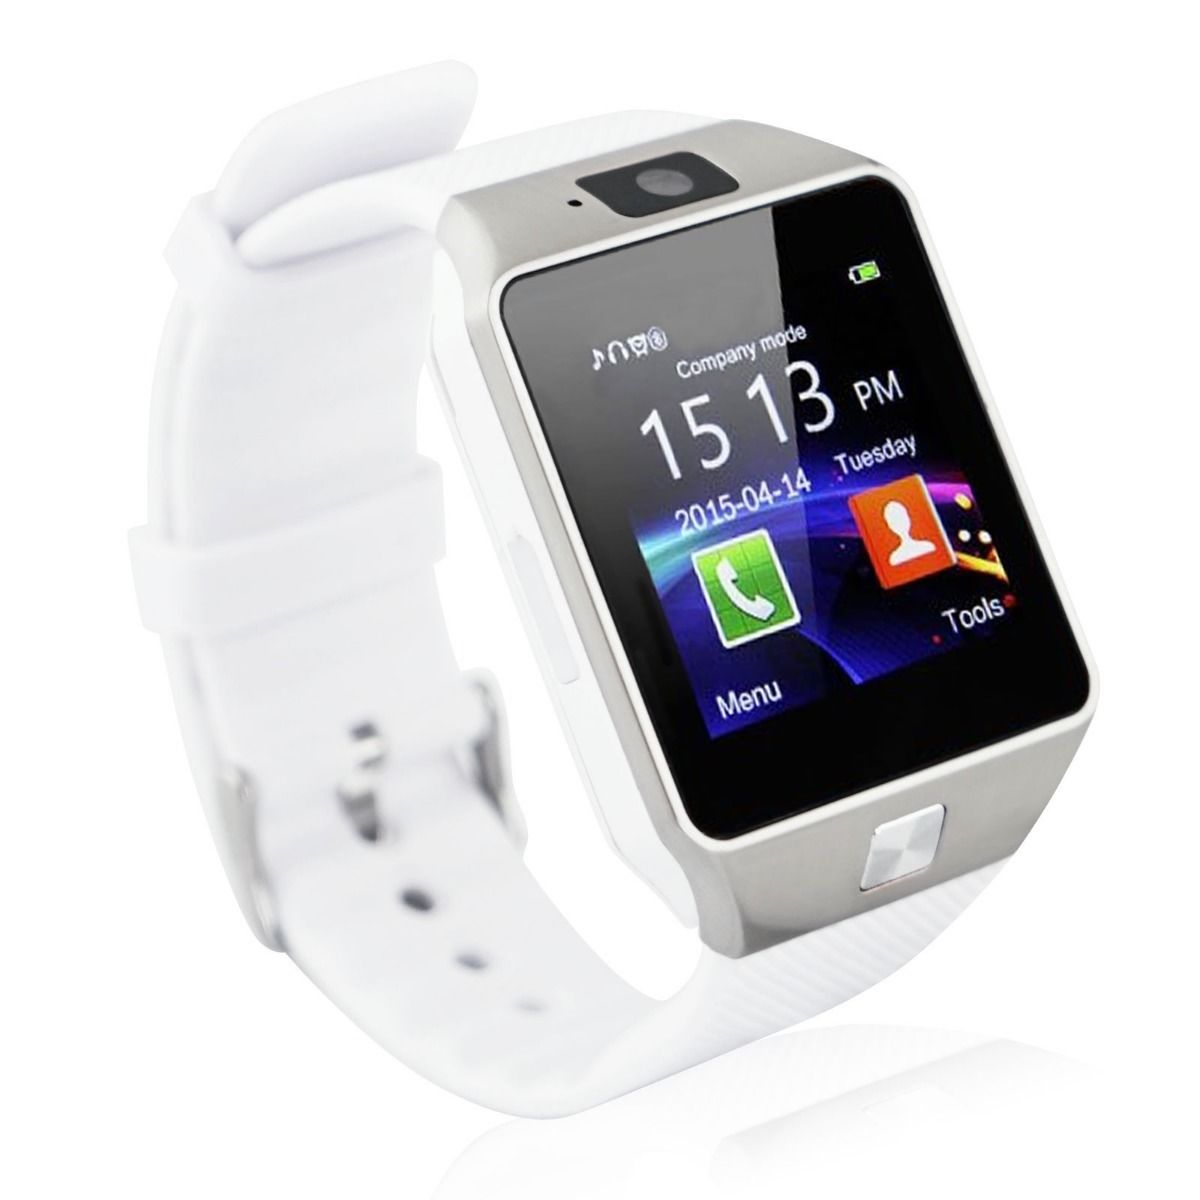 Smartwatch DZ09 Bluetooth Smart Watch1 1  61440 zoom - Best Cheap Smartwatch Phones Prices In Nigeria.